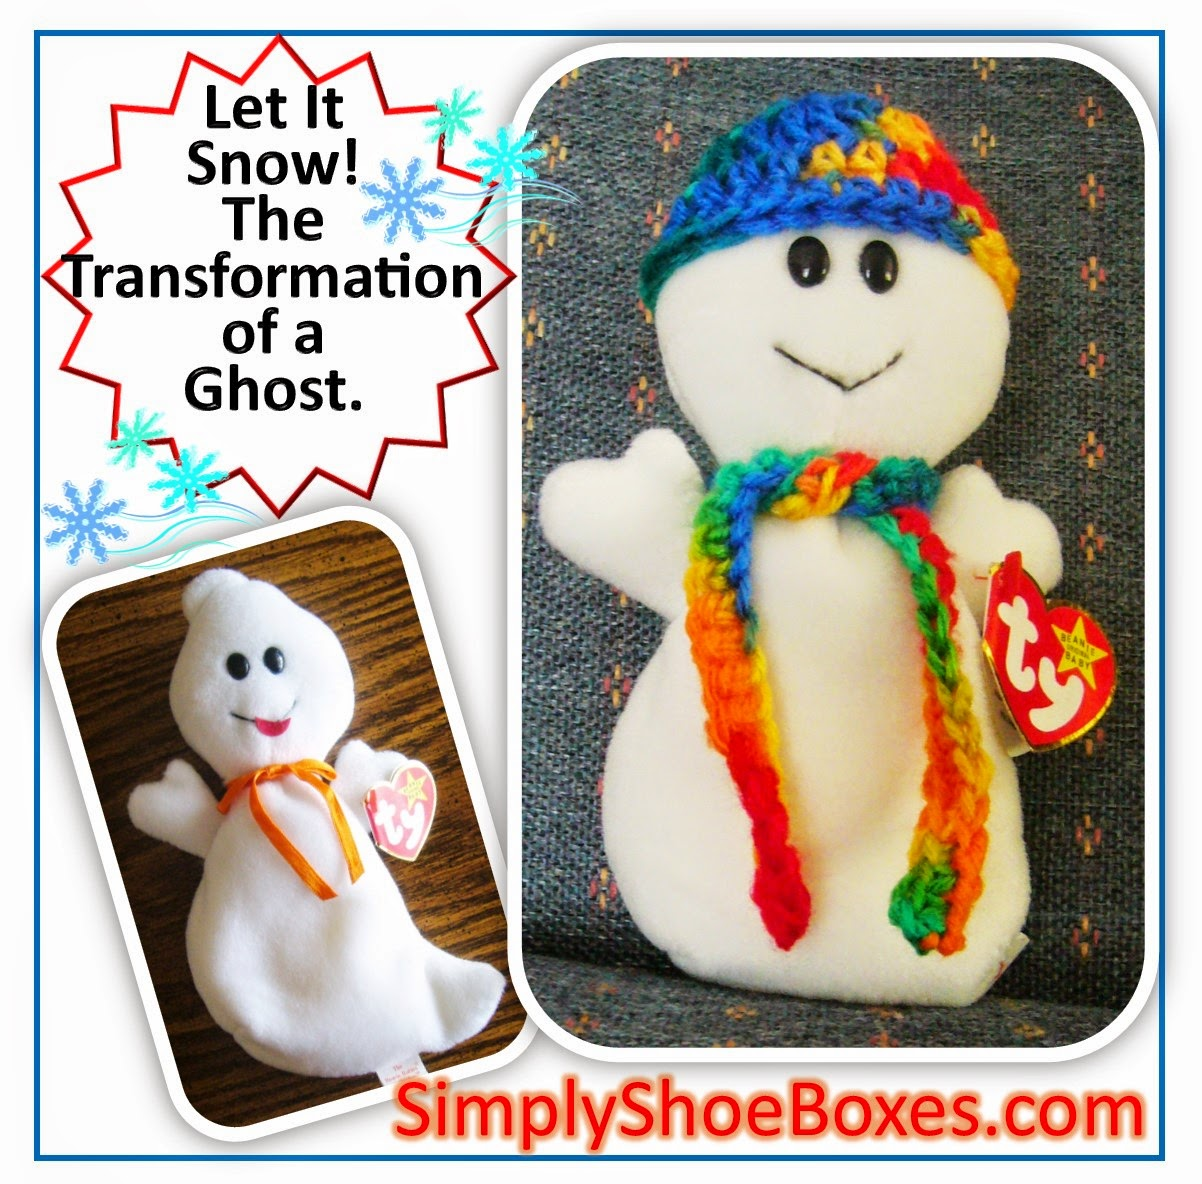 Beanie Baby ghost to snowman for Operation Christmas Child